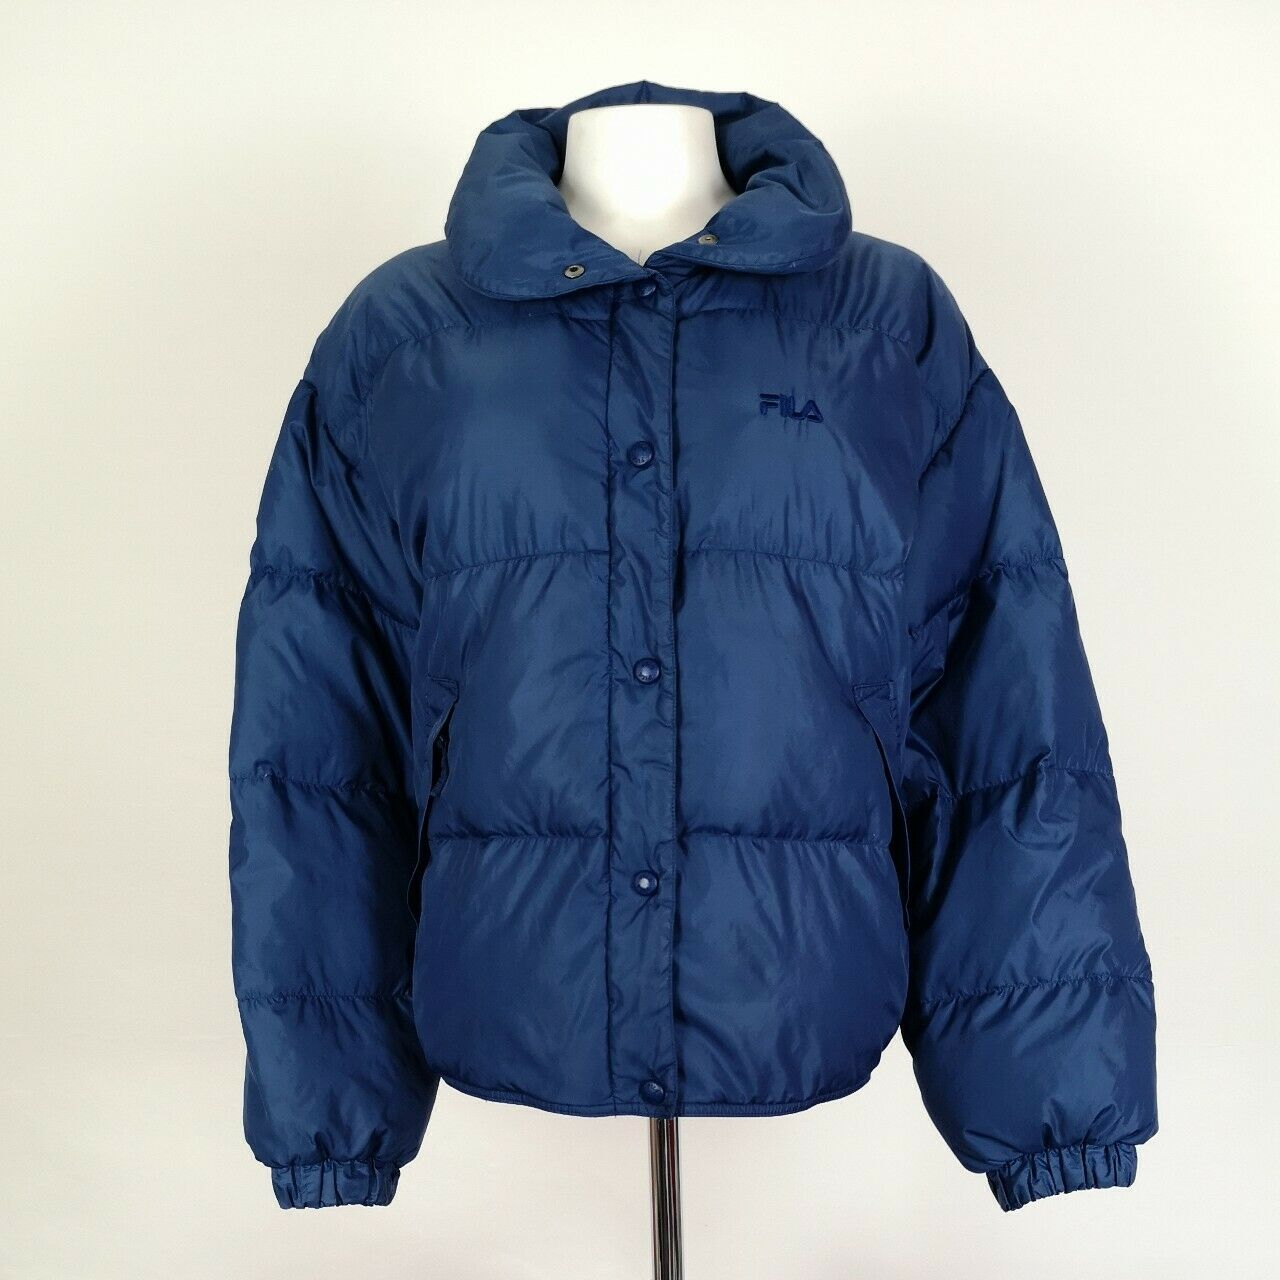 Details about Women's Vintage Fila Magic Line Puffer Jacket With Down Filling Blue Size UK 16